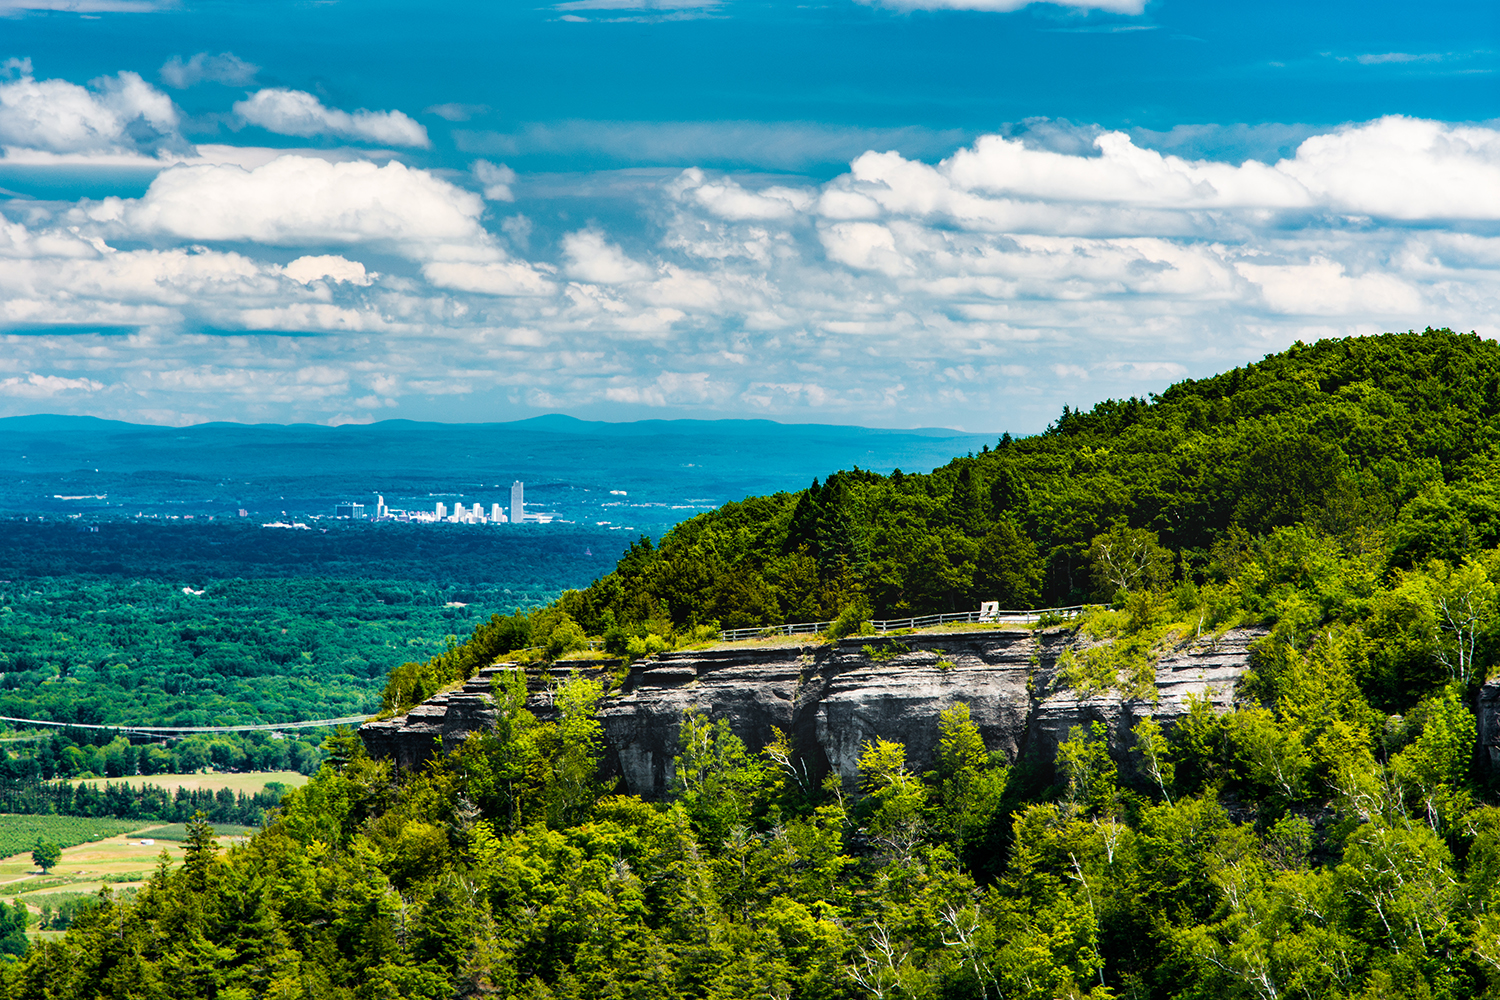 View of Albany from the Helderberg Escarpment in Thacher State Park, current northern terminus of the Long Path.  Steve Aaron Photography